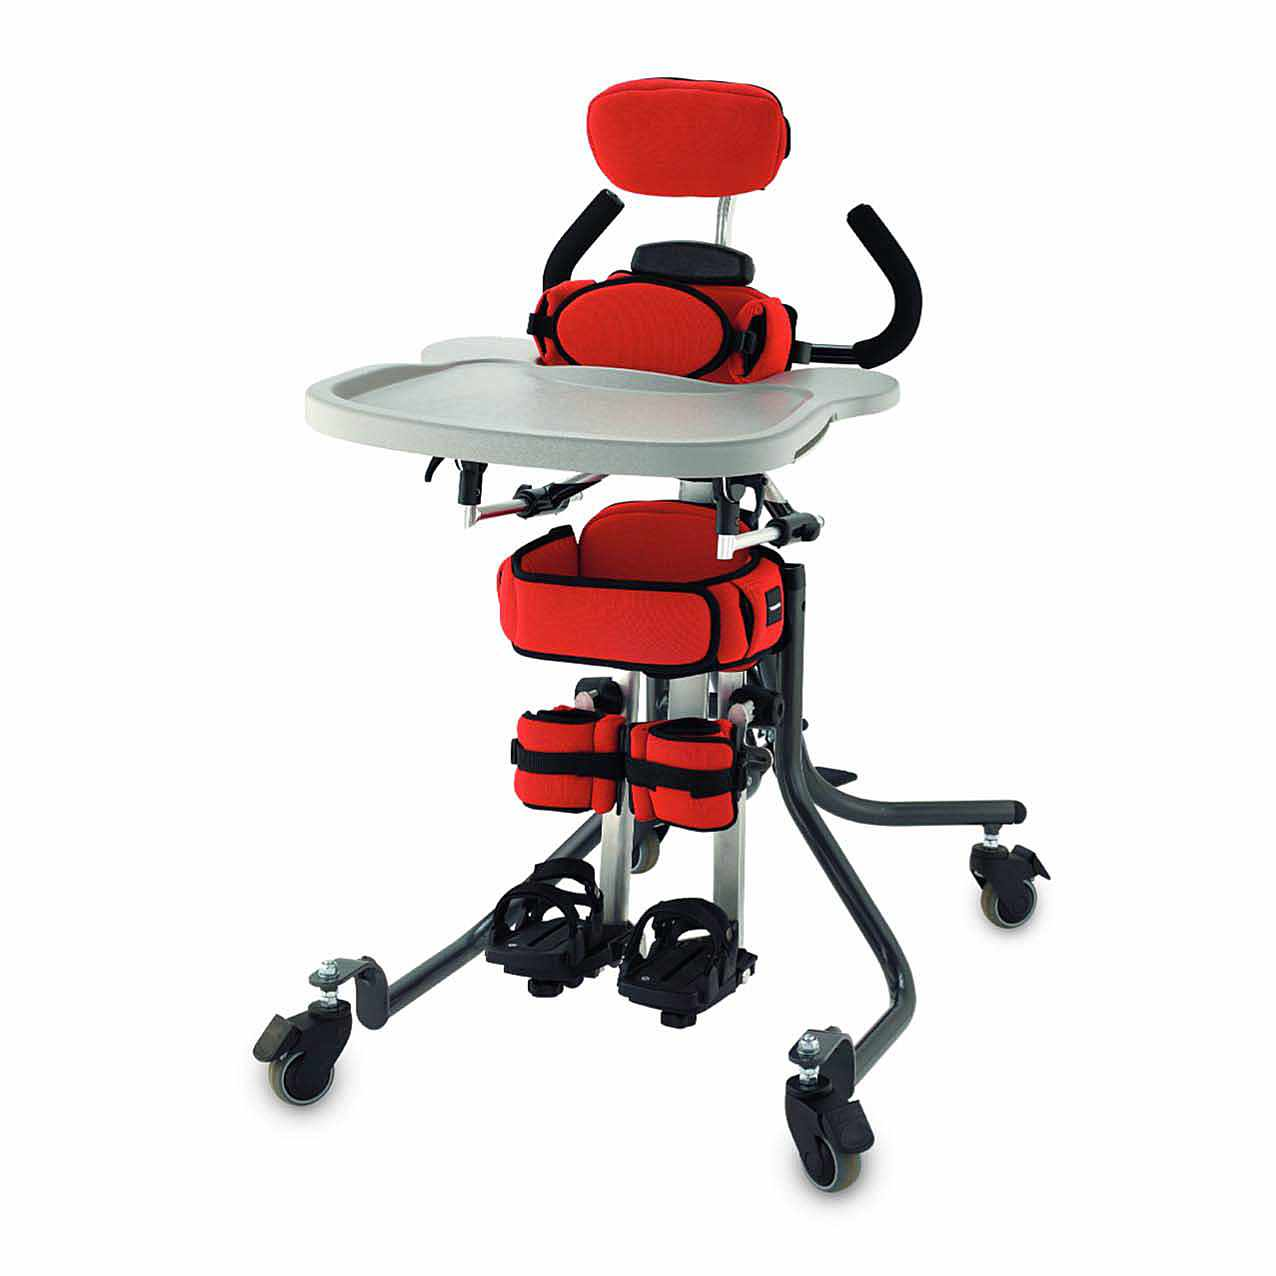 Leckey Squiggles Plus stander package - Fully assembled